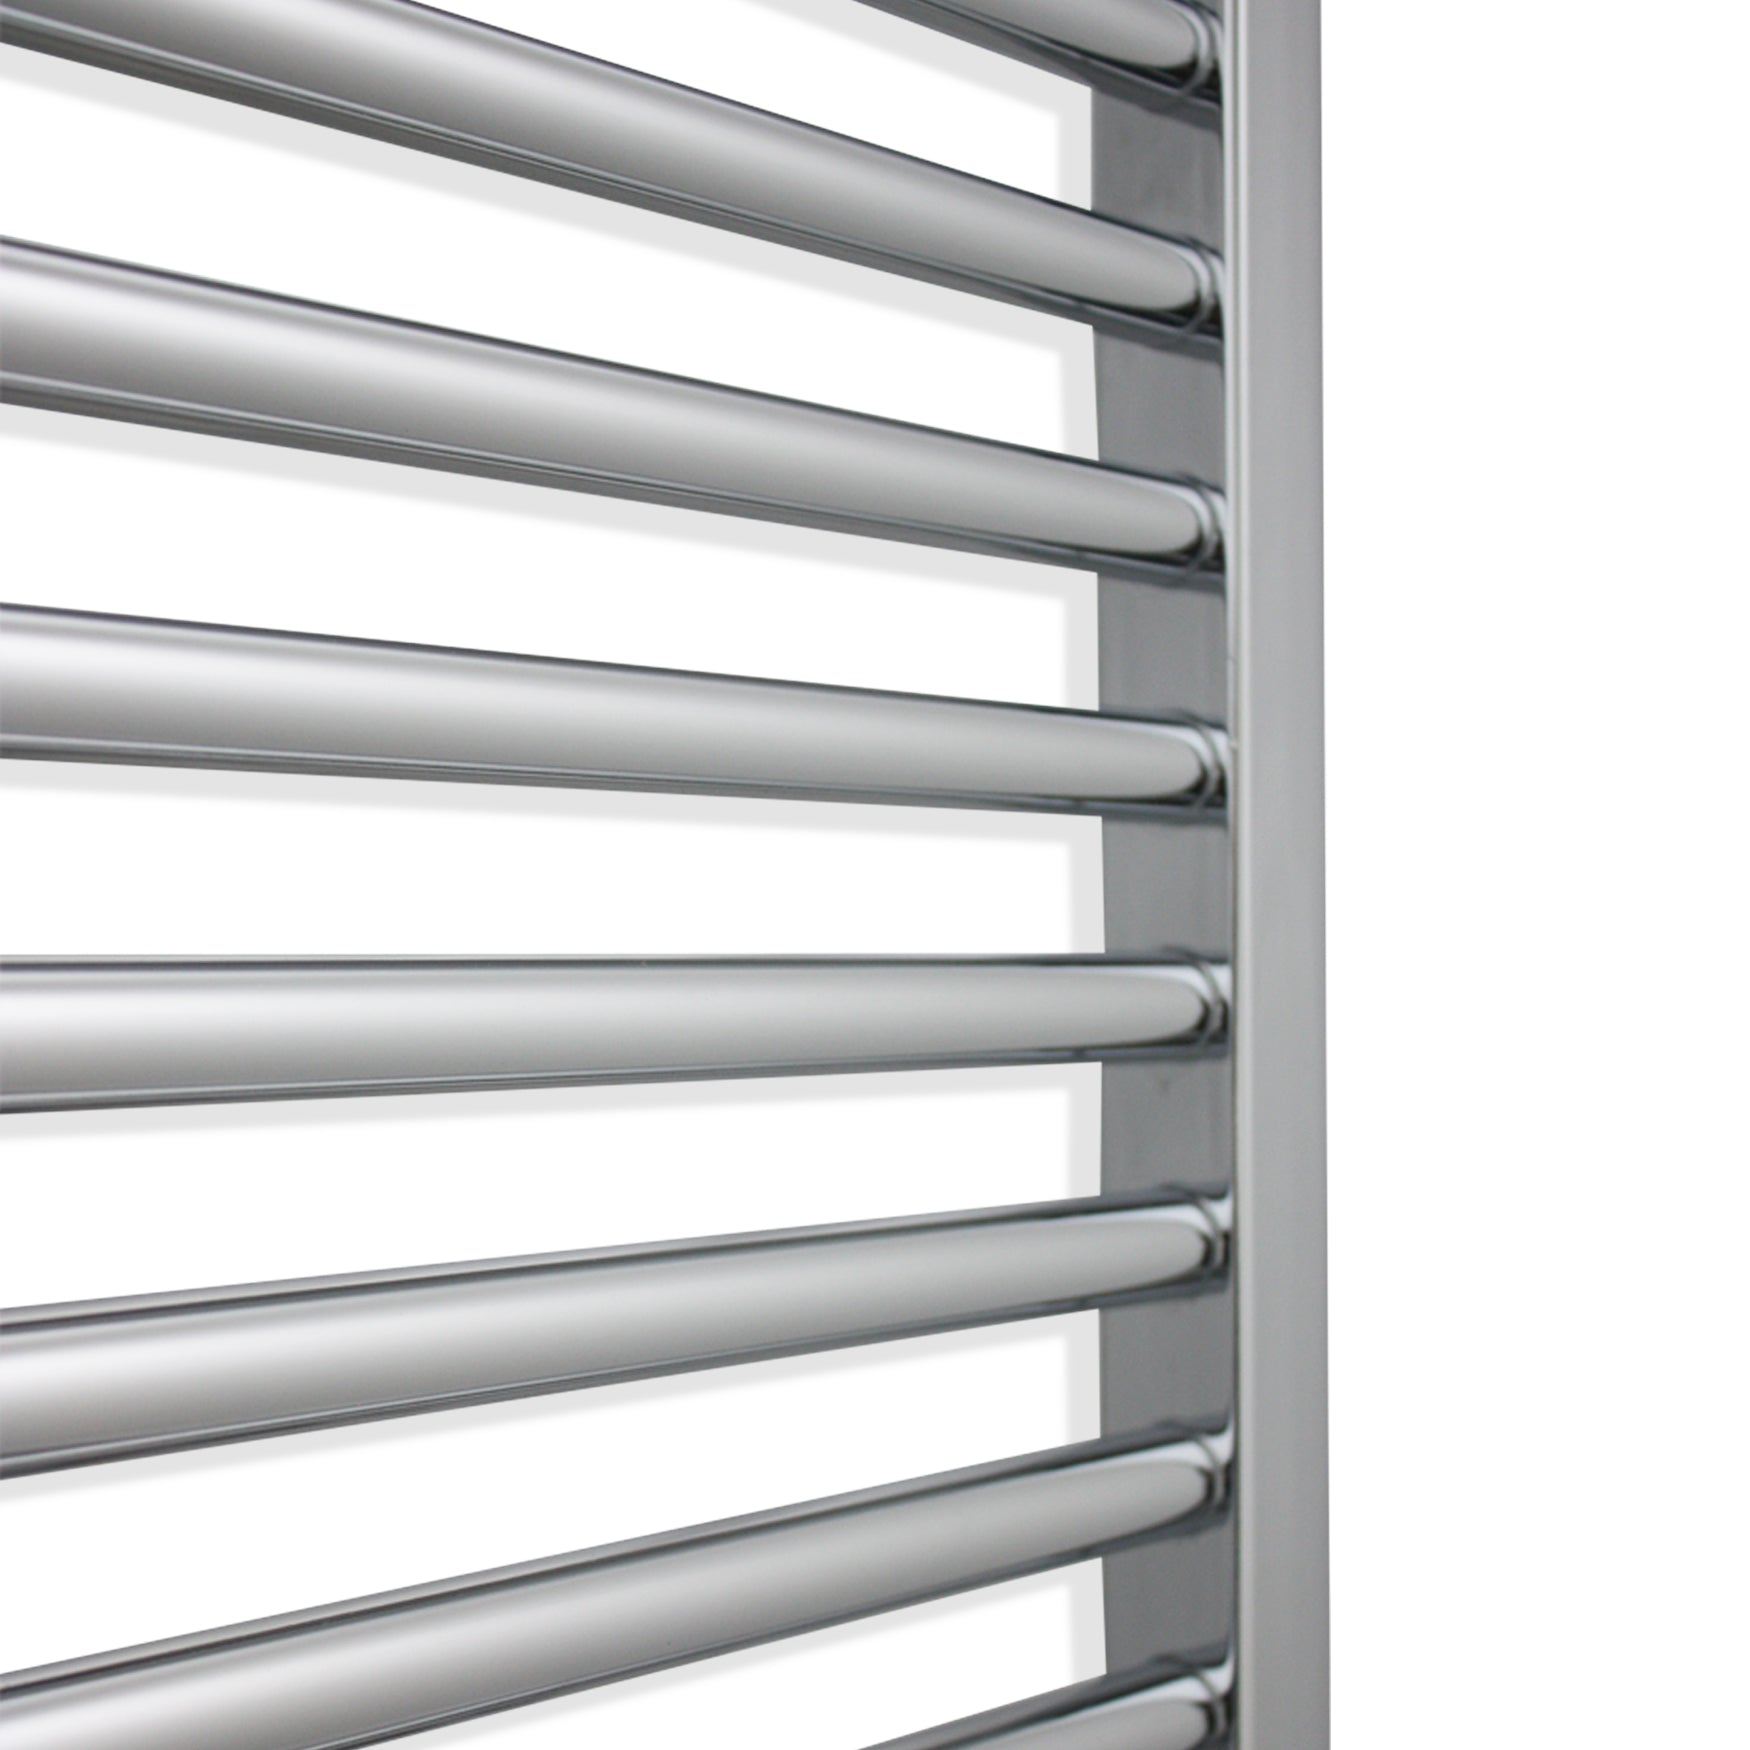 350mm Wide 400mm High Flat Chrome Pre-Filled Electric Heated Towel Rail Radiator HTR